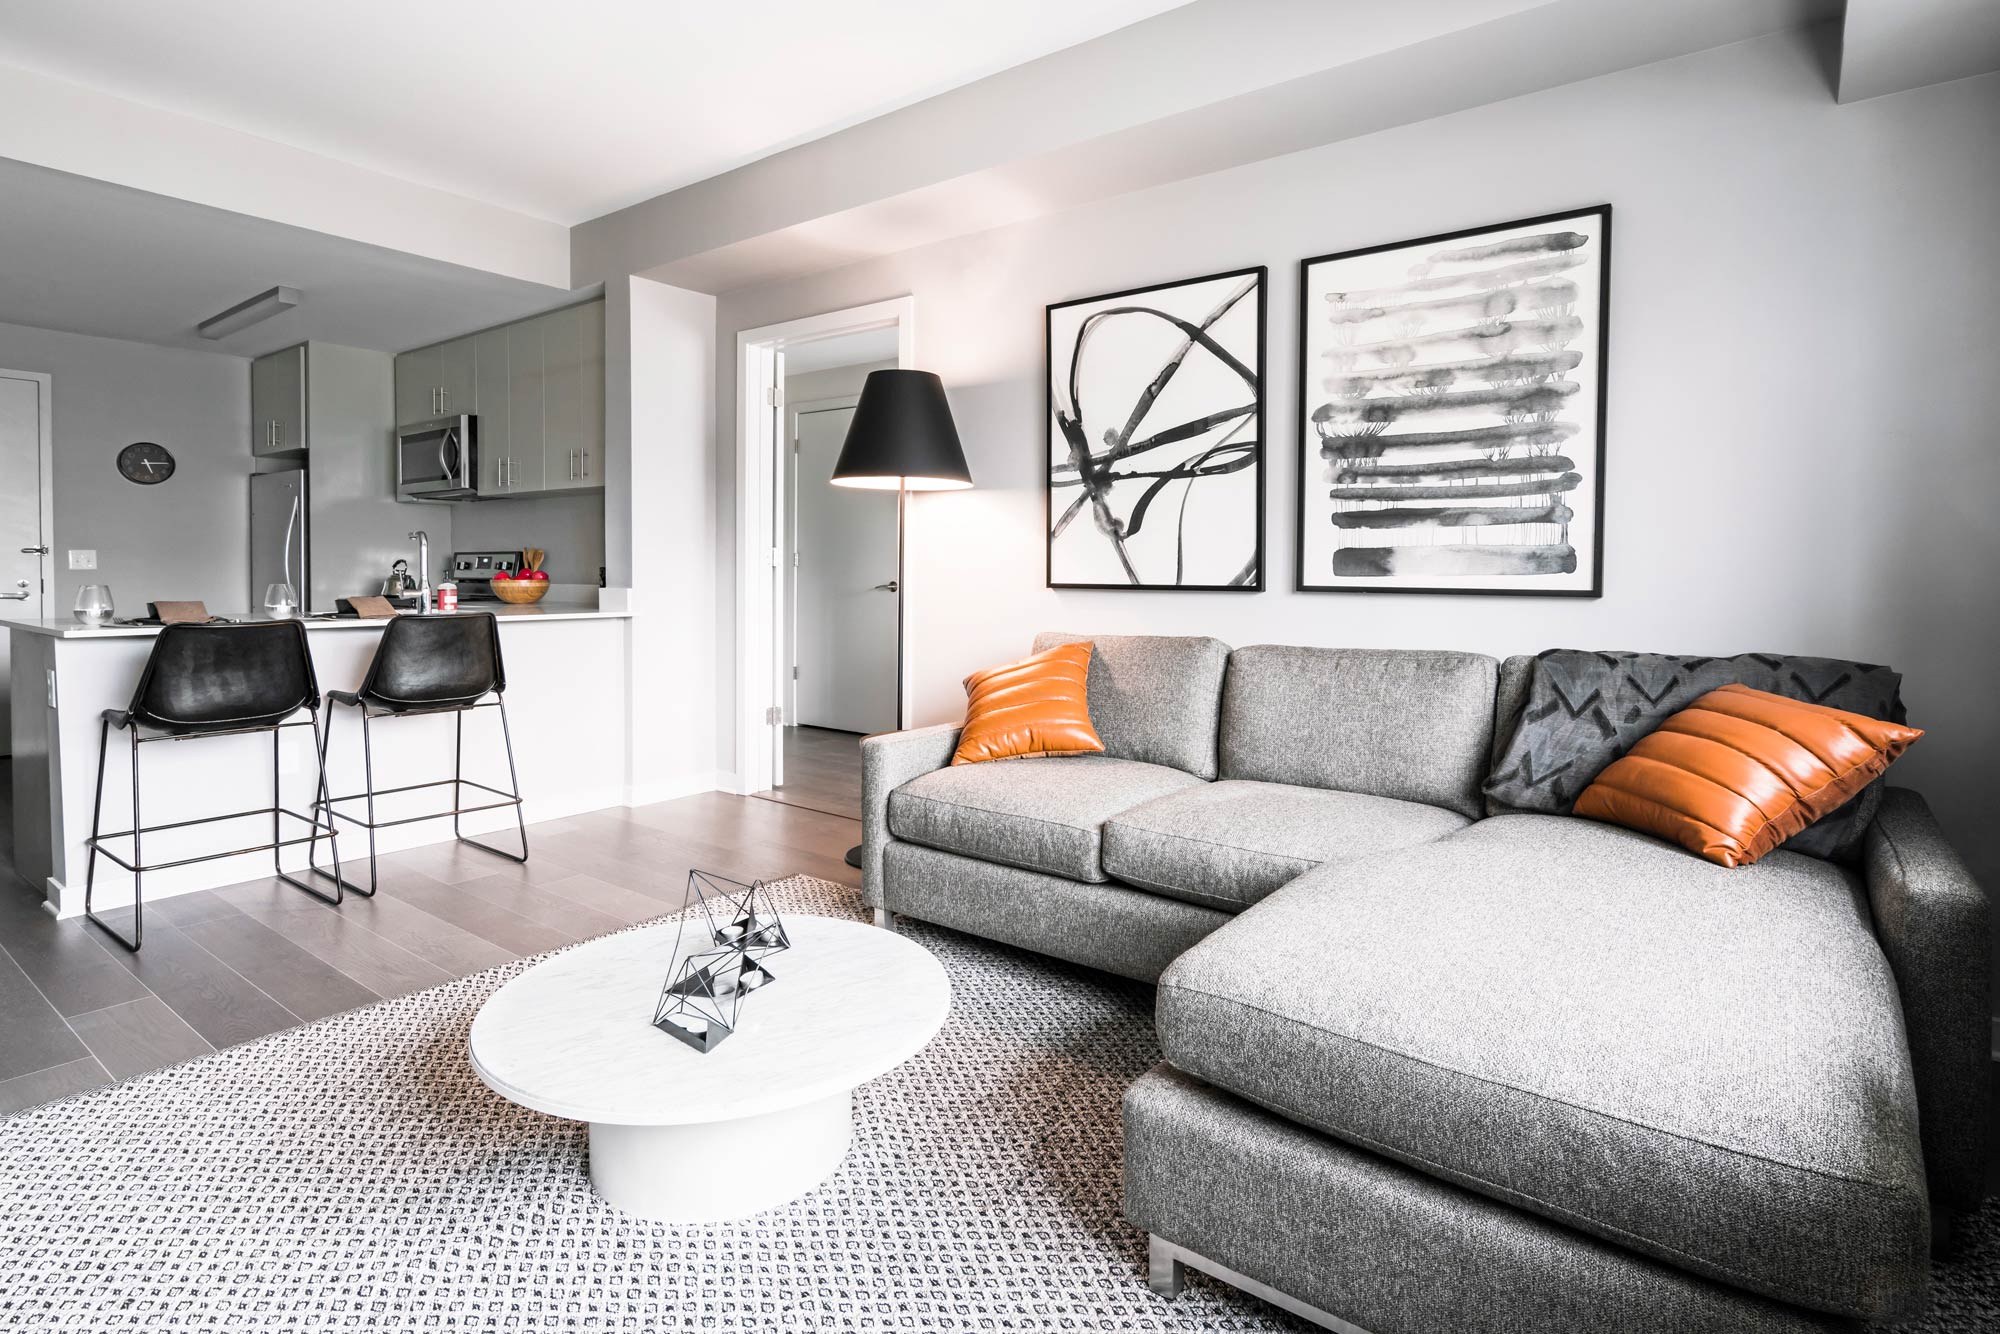 Peek Inside KRE Group's 485 Marin's Luxury Rentals Where Rentals Start August 15